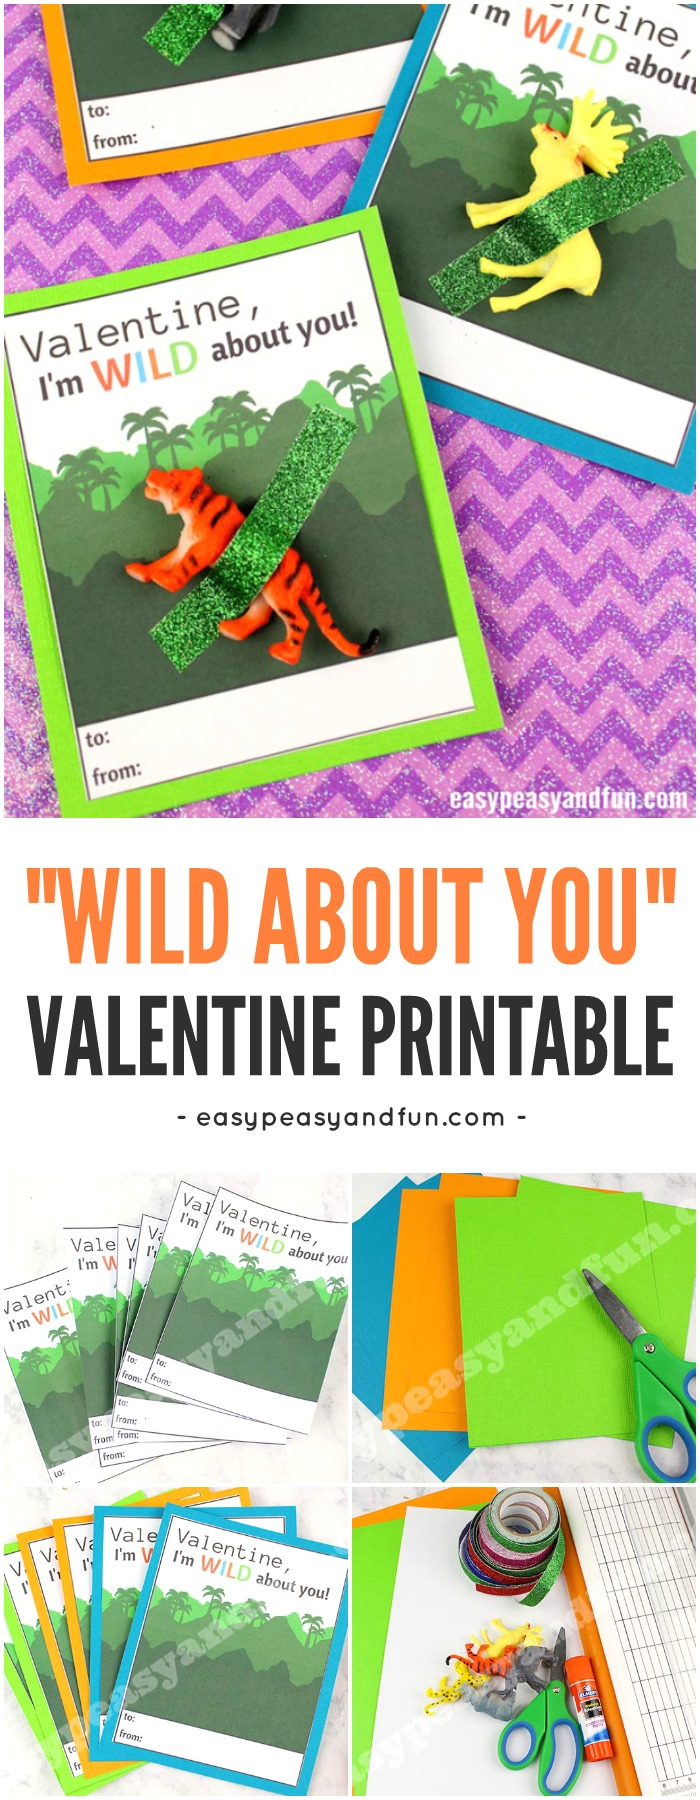 """Wild About You"" Valentine Printable Card for Kids to Make #Valentineprintable #papercraft #valentinesdaycraftforkids"